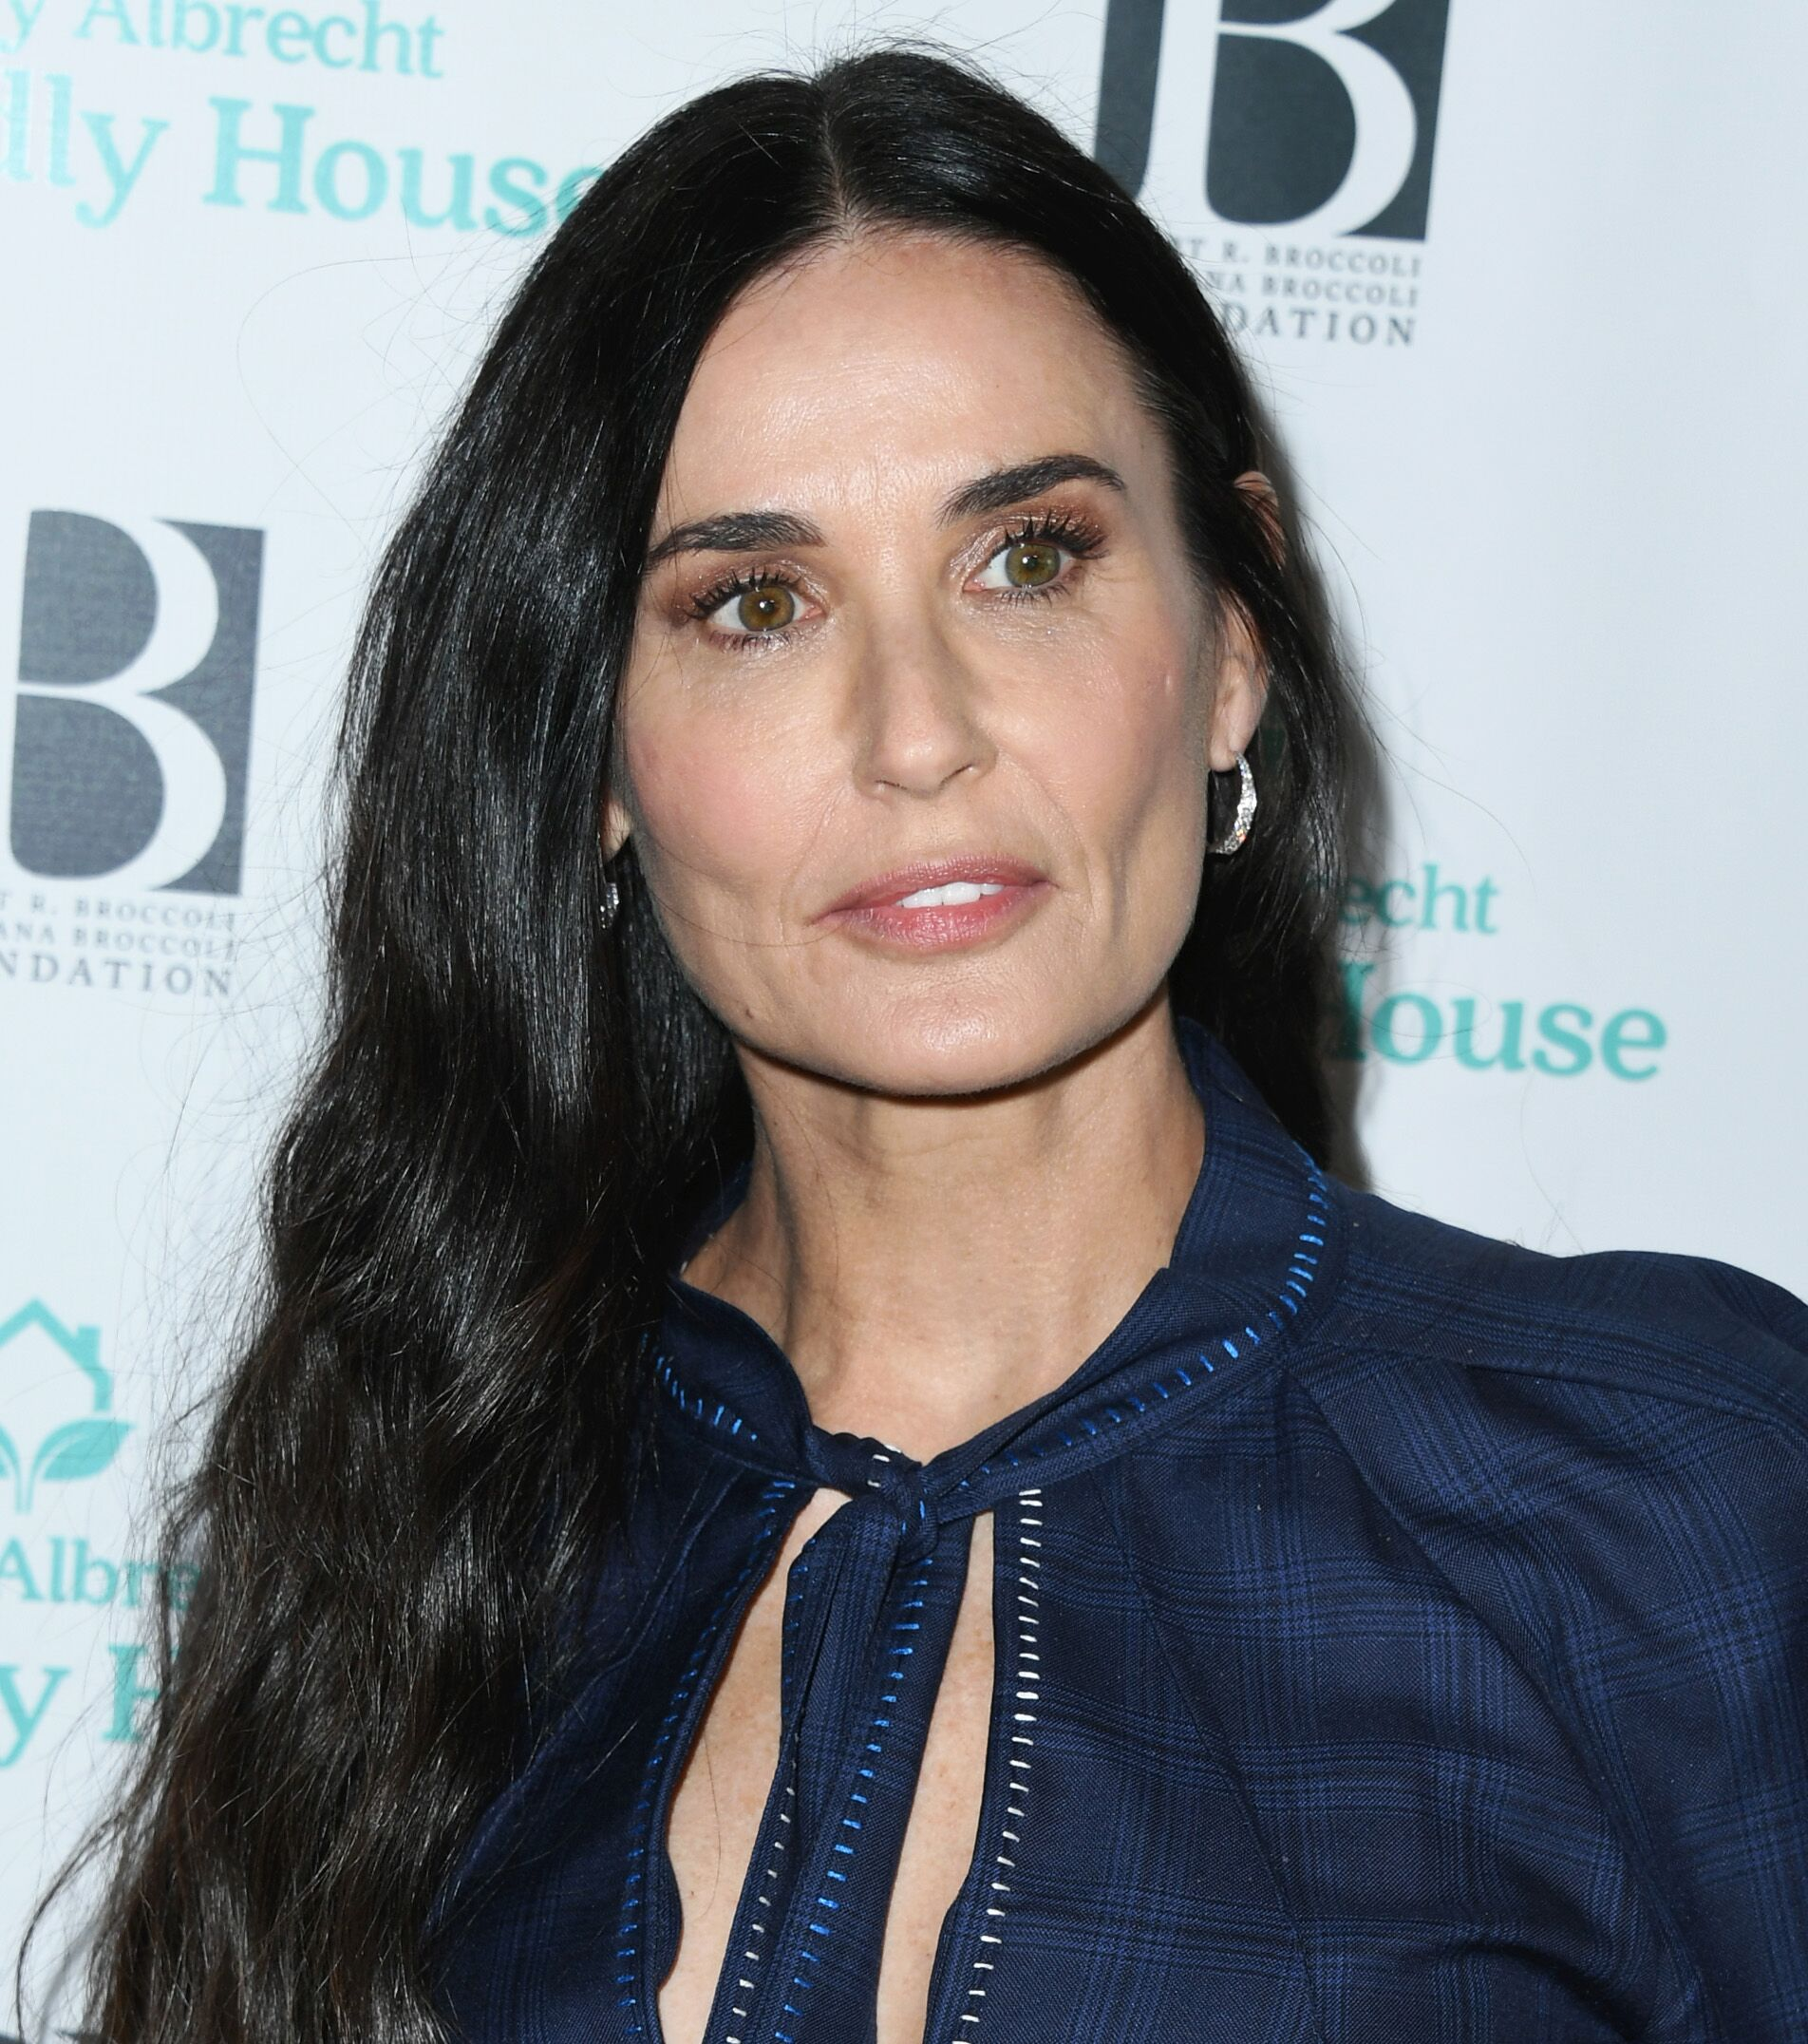 Demi Moore attends Friendly House 30th Annual Awards Luncheon at The Beverly Hilton Hotel. | Source: Getty Images